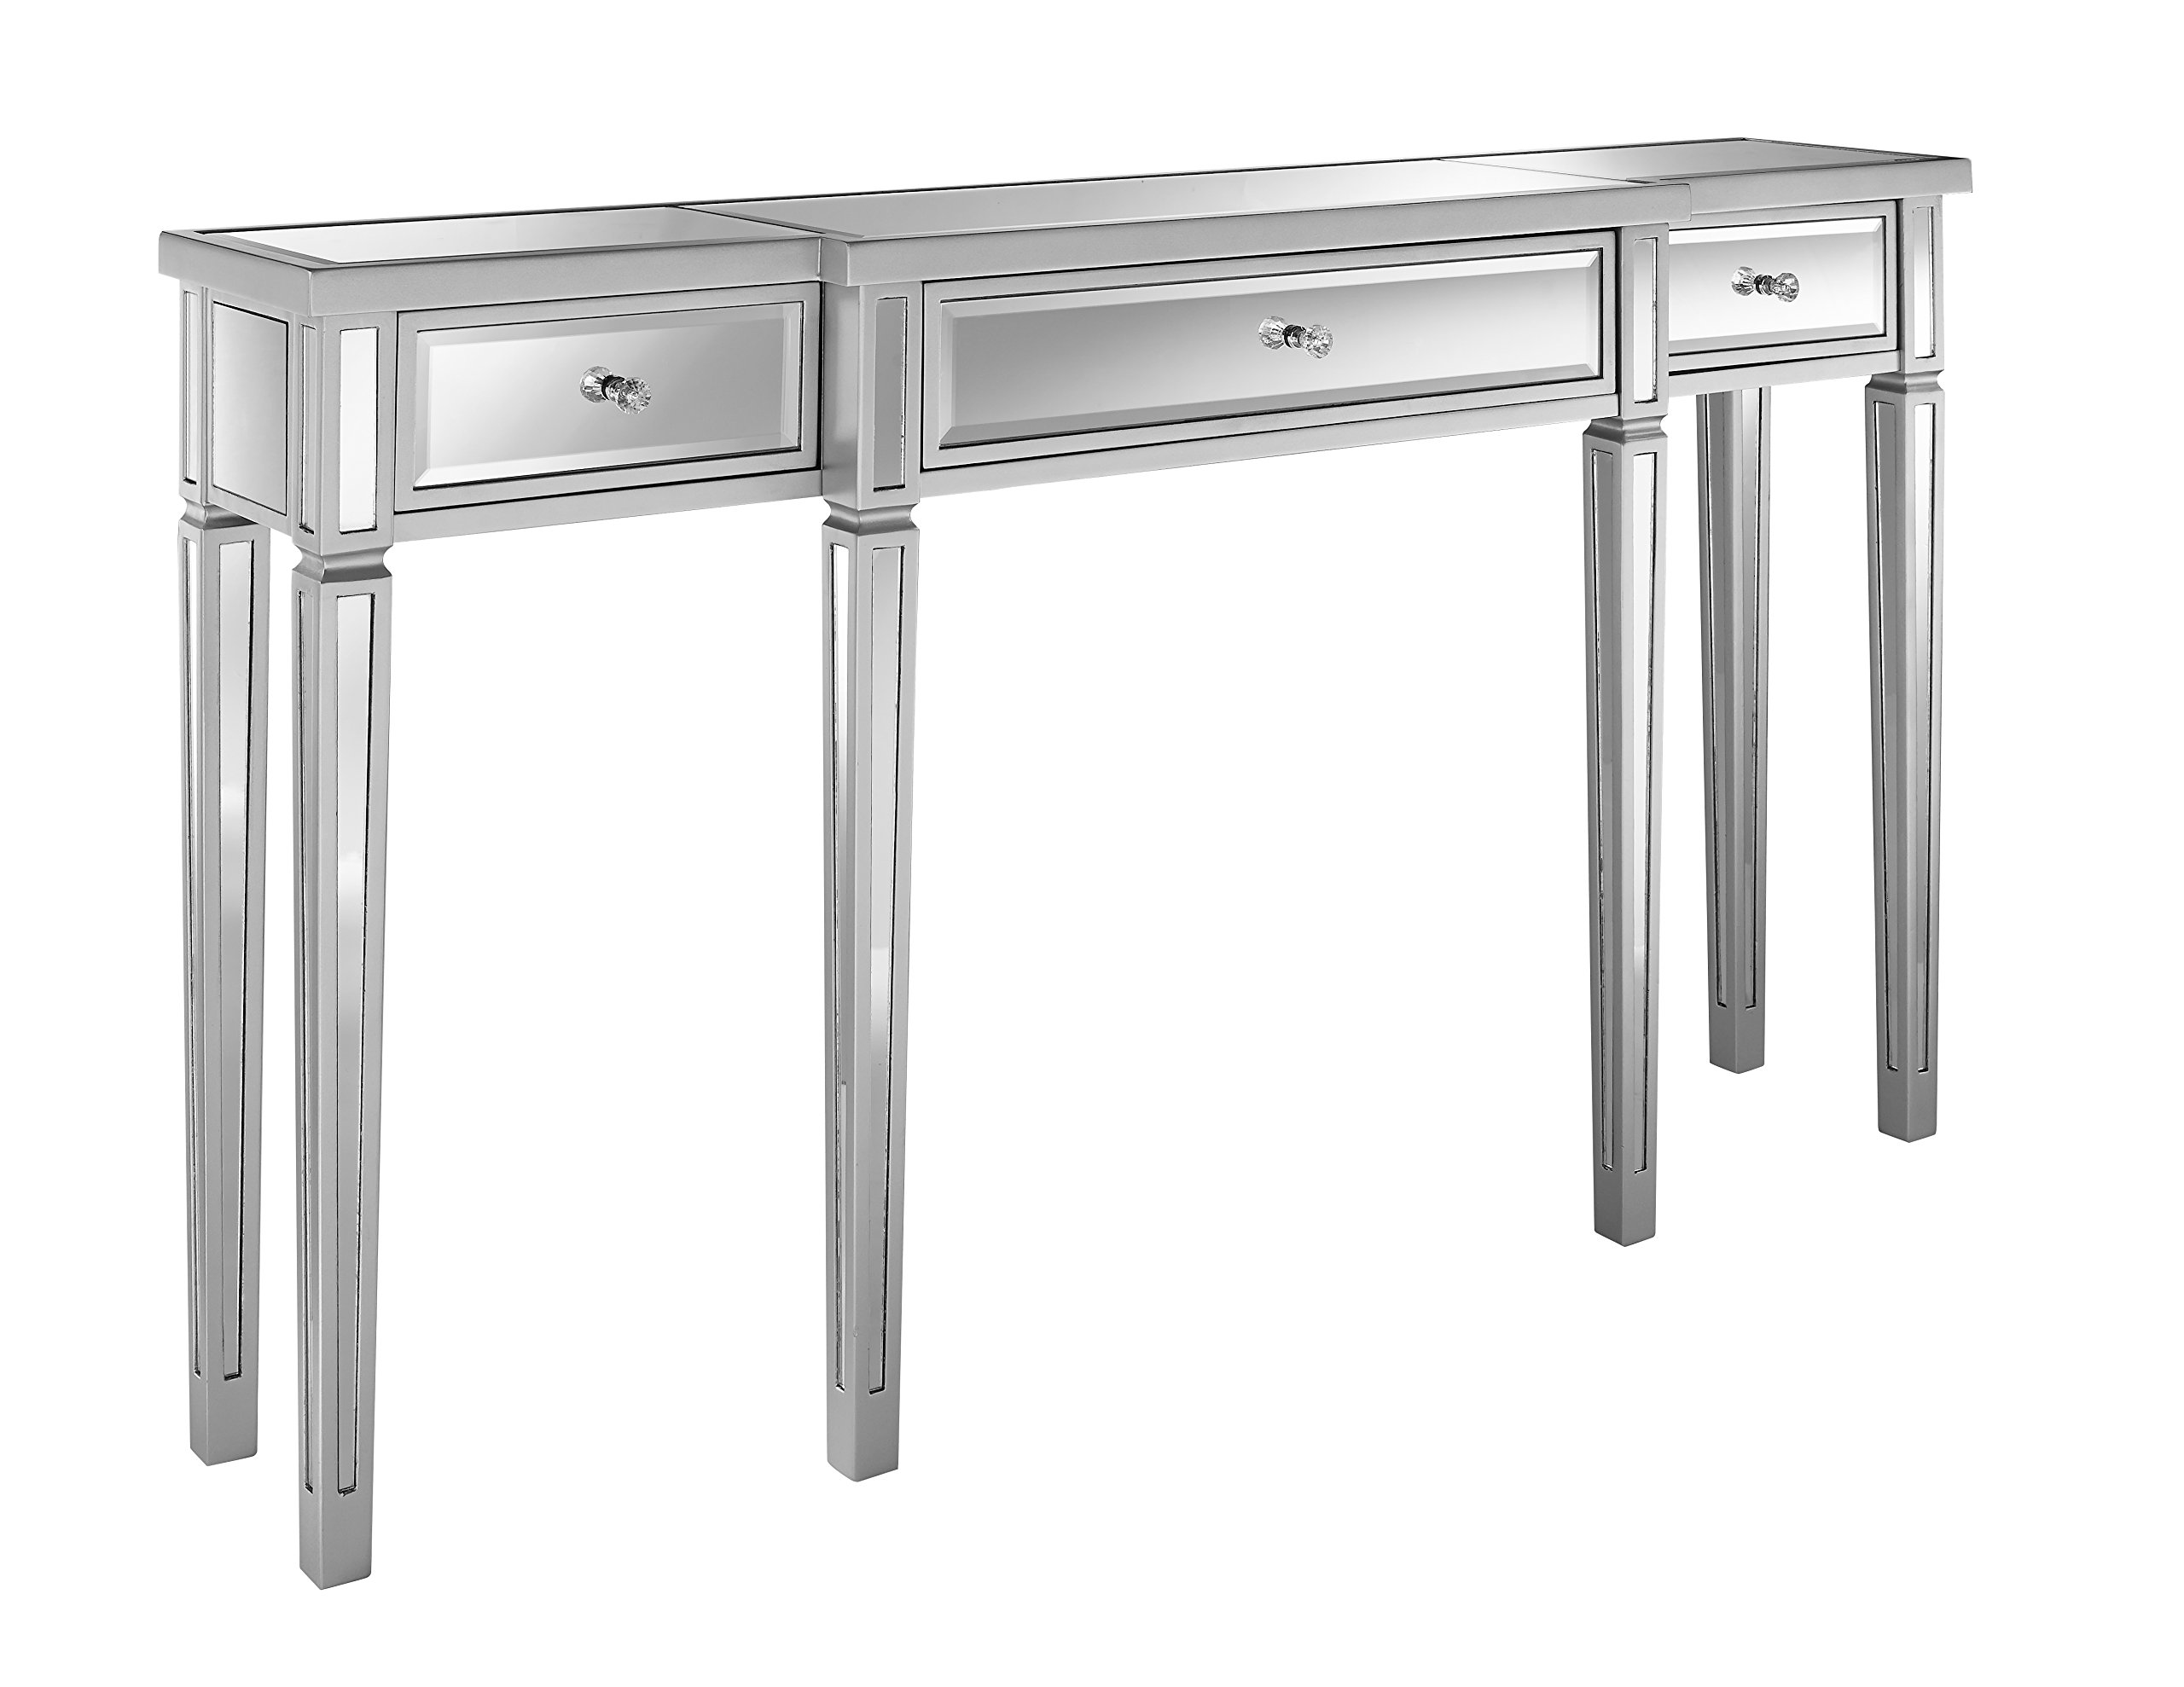 Pulaski Damon Mirrored Console Table, 59.0'' L x 12.25'' W x 33.0'' H by Pulaski